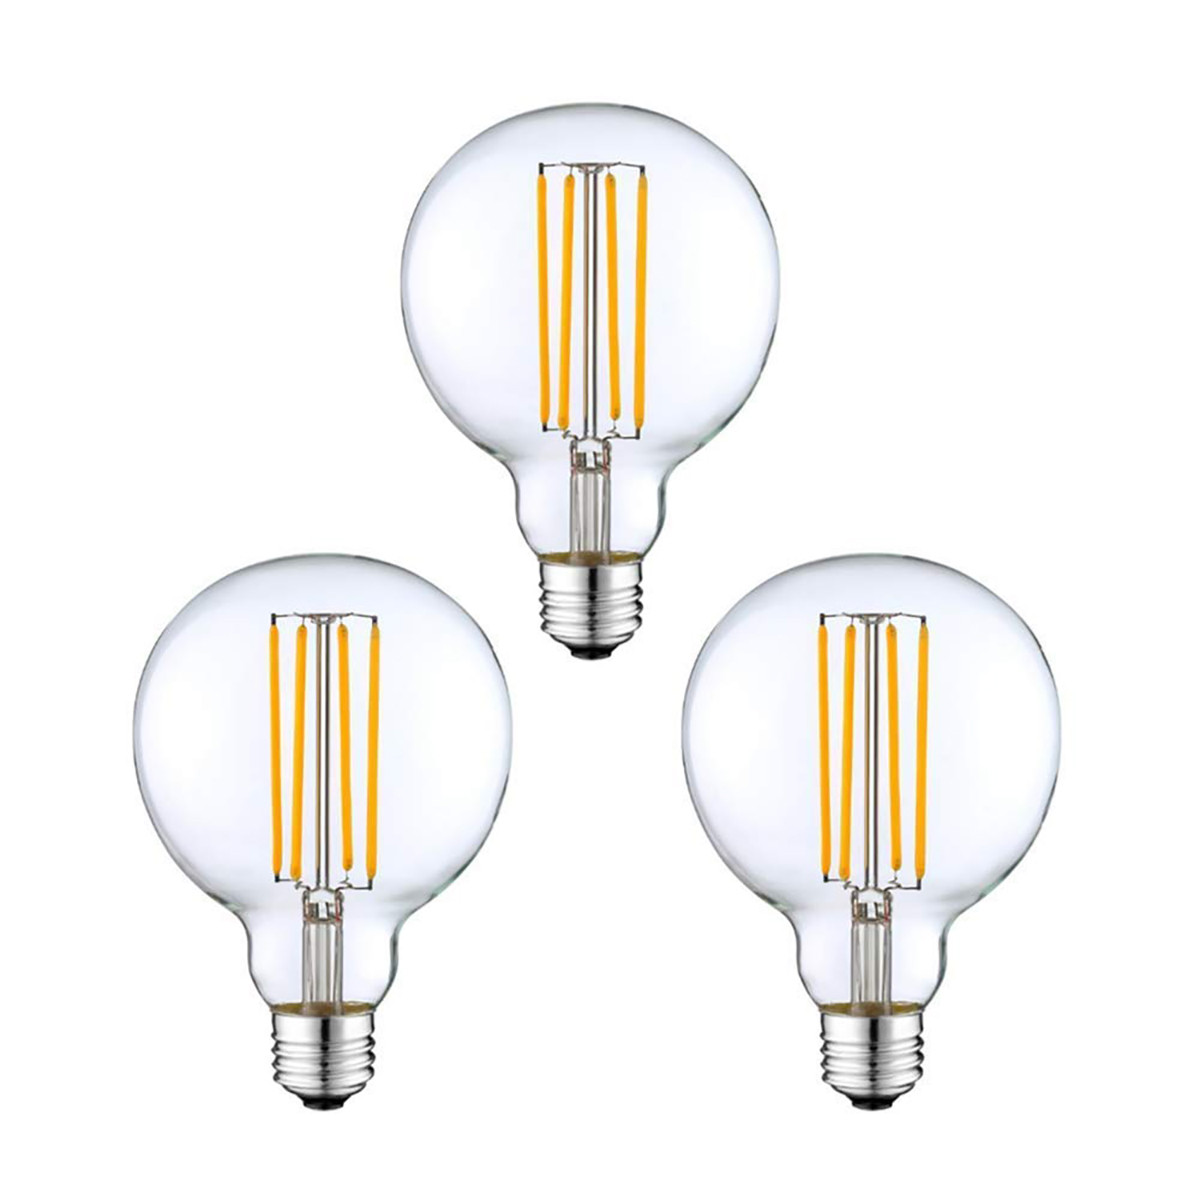 4W Filament LED Globe Light Bulb Light G80 Flame Tip Chandelier Bulb with E26 Base 40W Equivalent Halogen Replacement